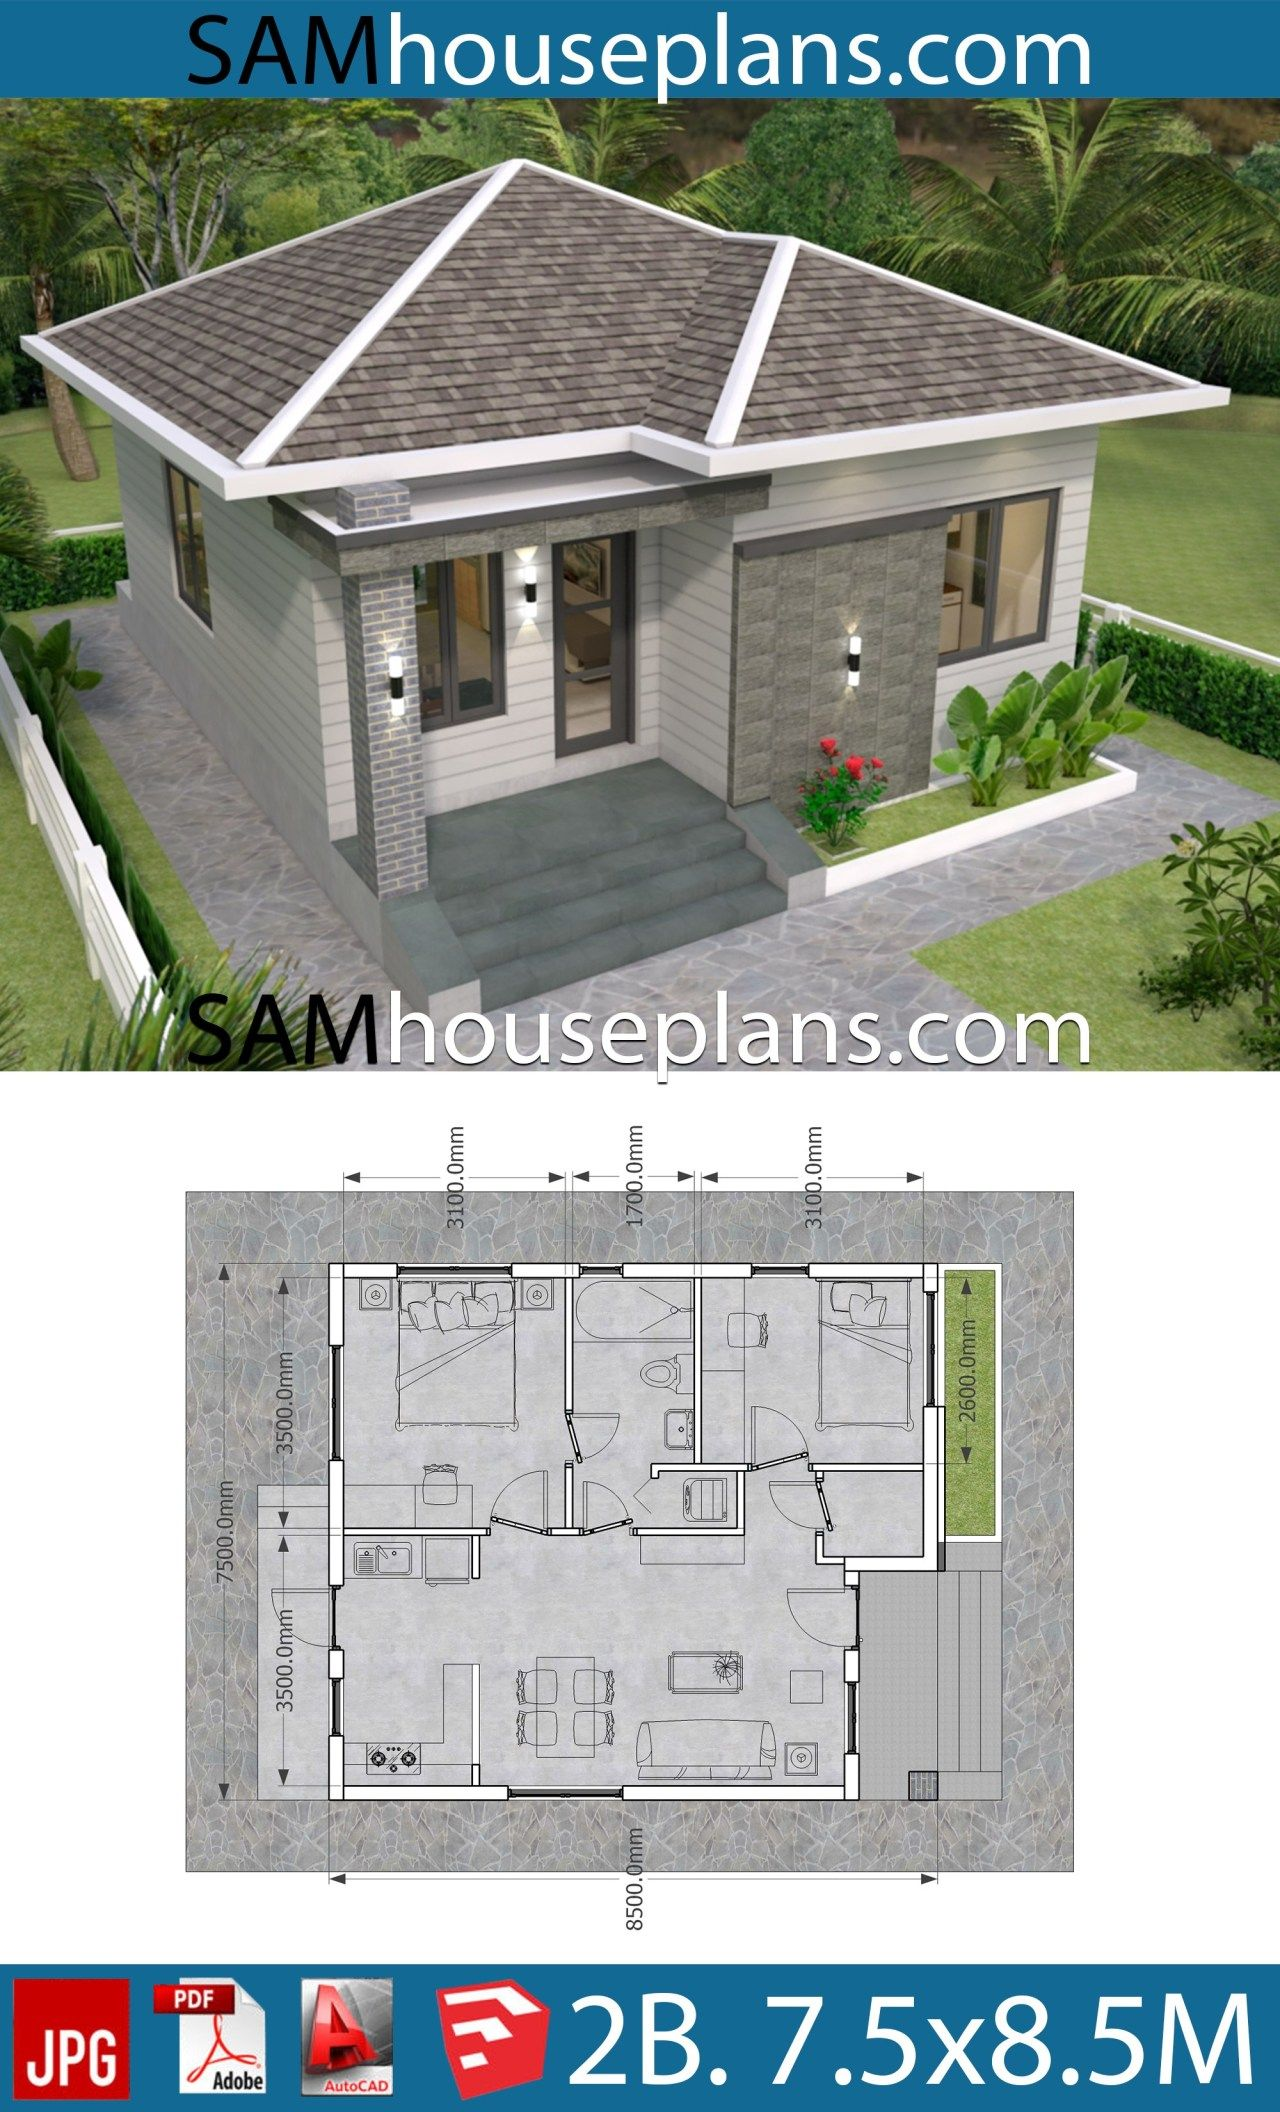 House Plans 7 5x8 5m With 2 Bedrooms Sam House Plans Modern House Floor Plans House Design Pictures Simple House Plans